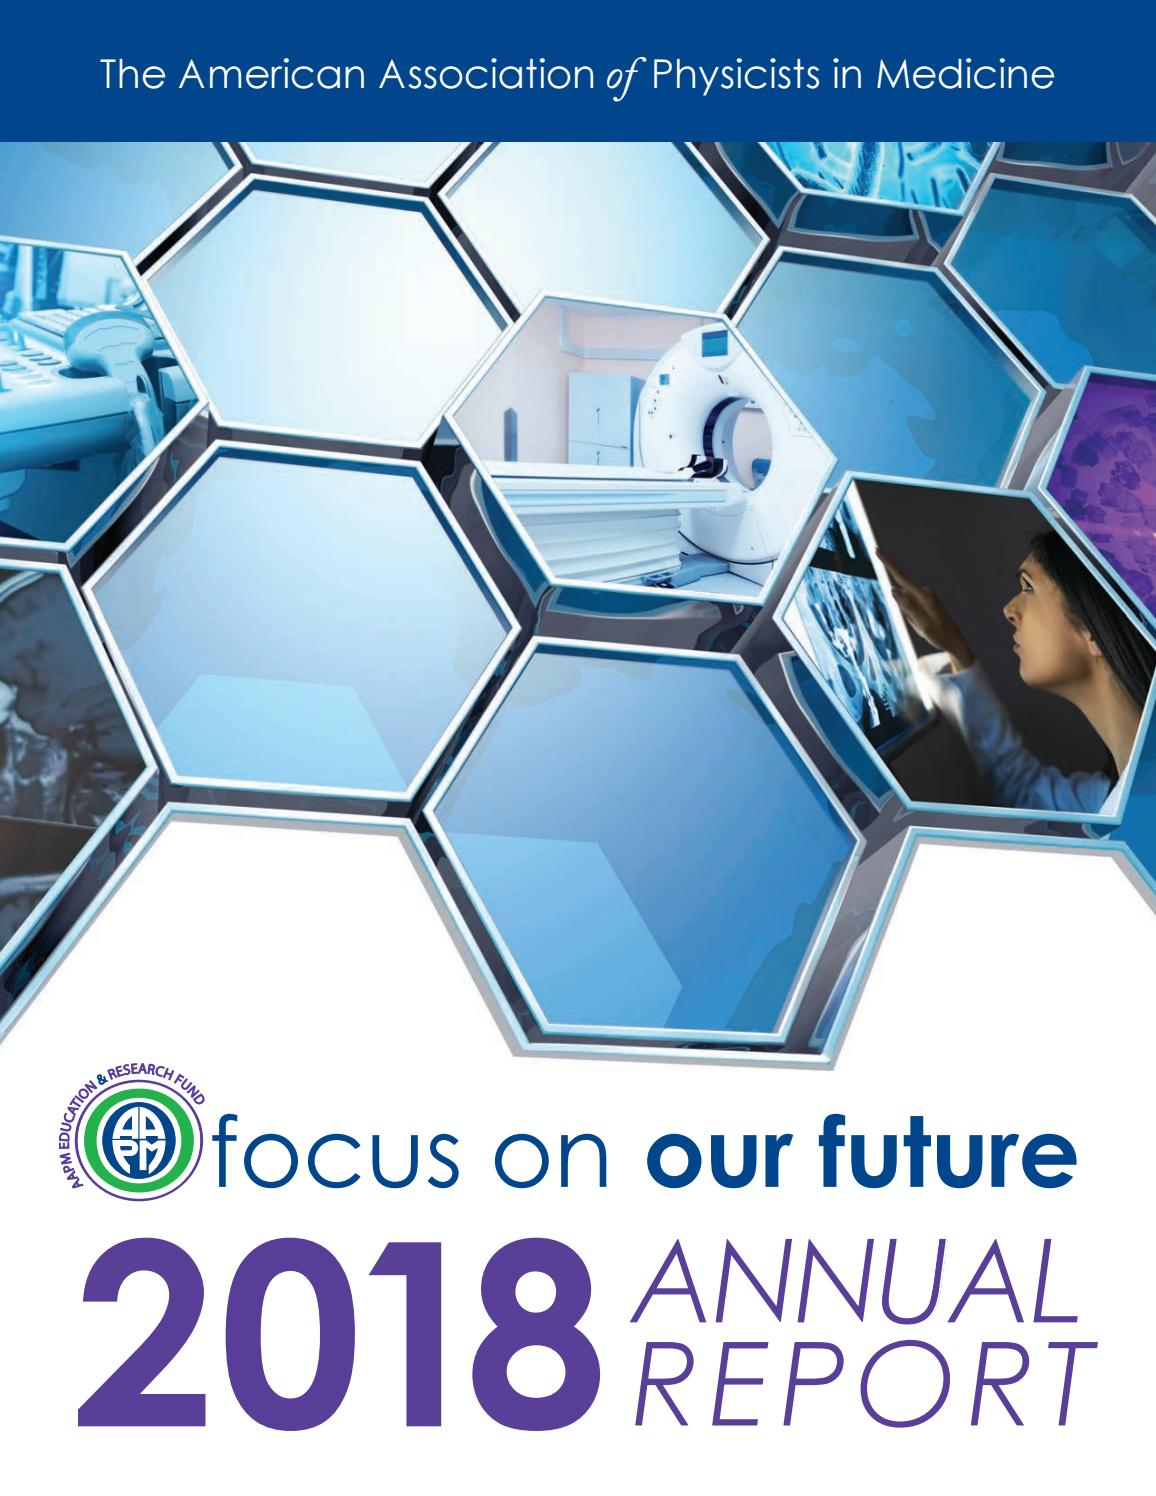 2018 Education Research Fund Annual Report By Aapmdocs Issuu